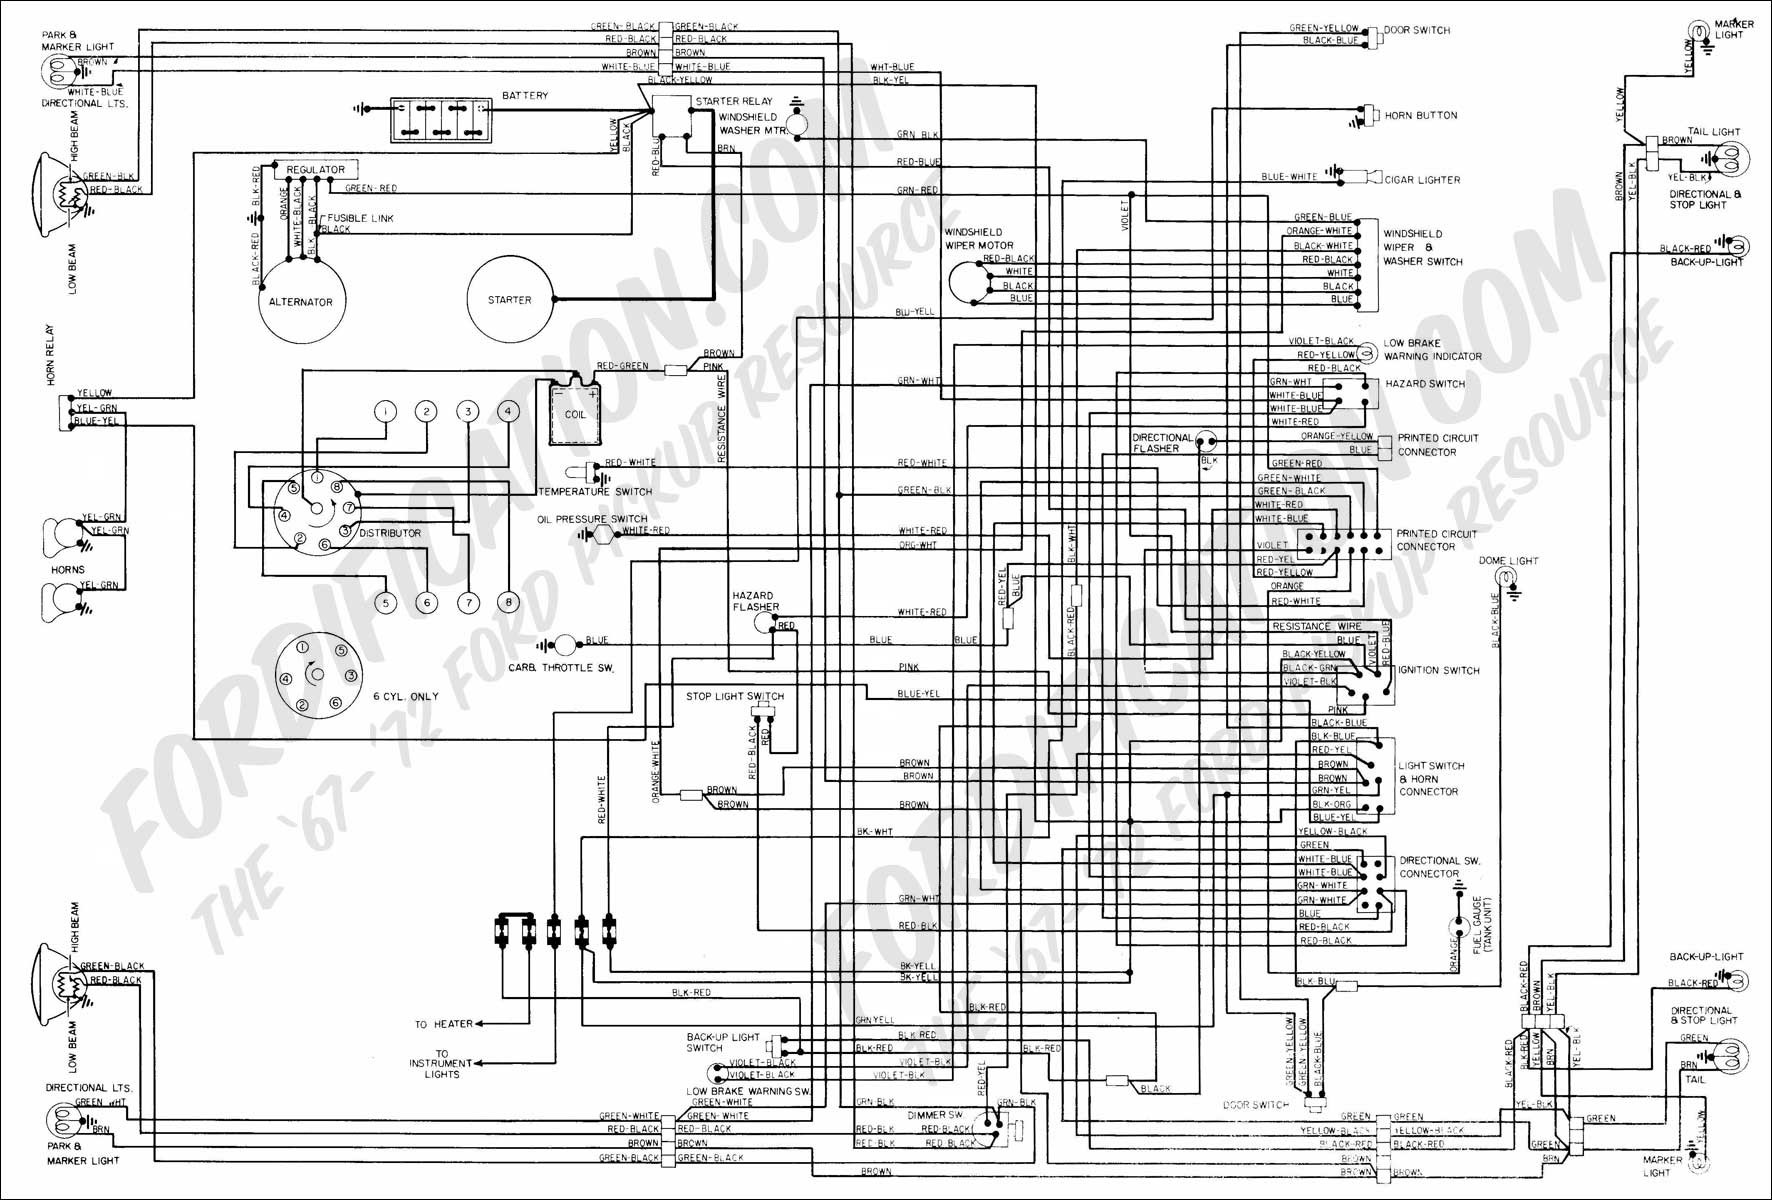 Ford 6 0 Engine Diagram ford F350 Wiring Diagram 5 Lenito Of Ford 6 0 Engine